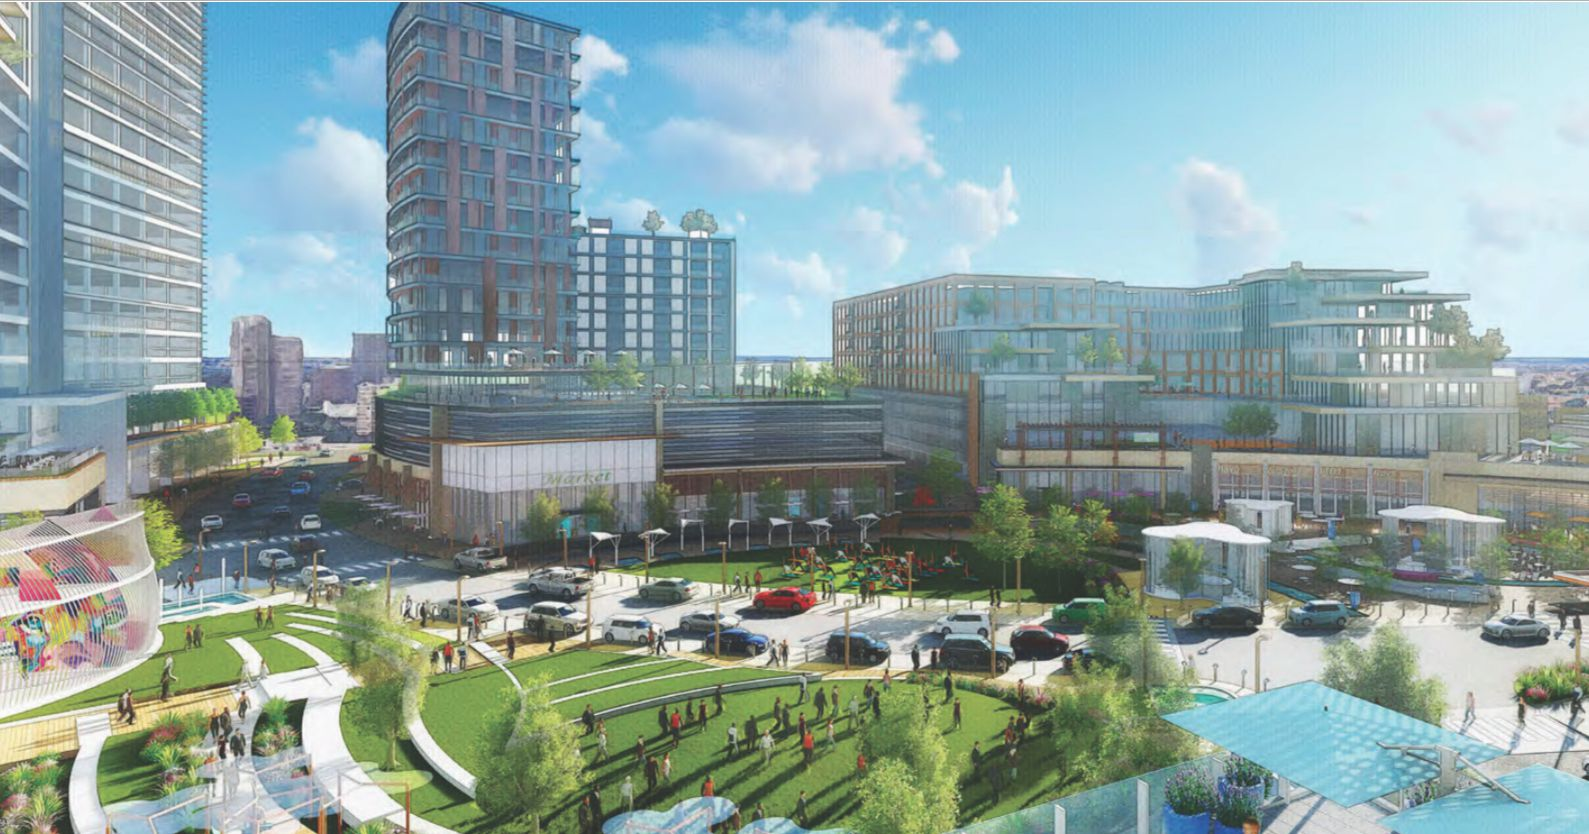 The planned Park Heritage at Midtown development would include more than 1.5 million square feet in a mixed-use development.